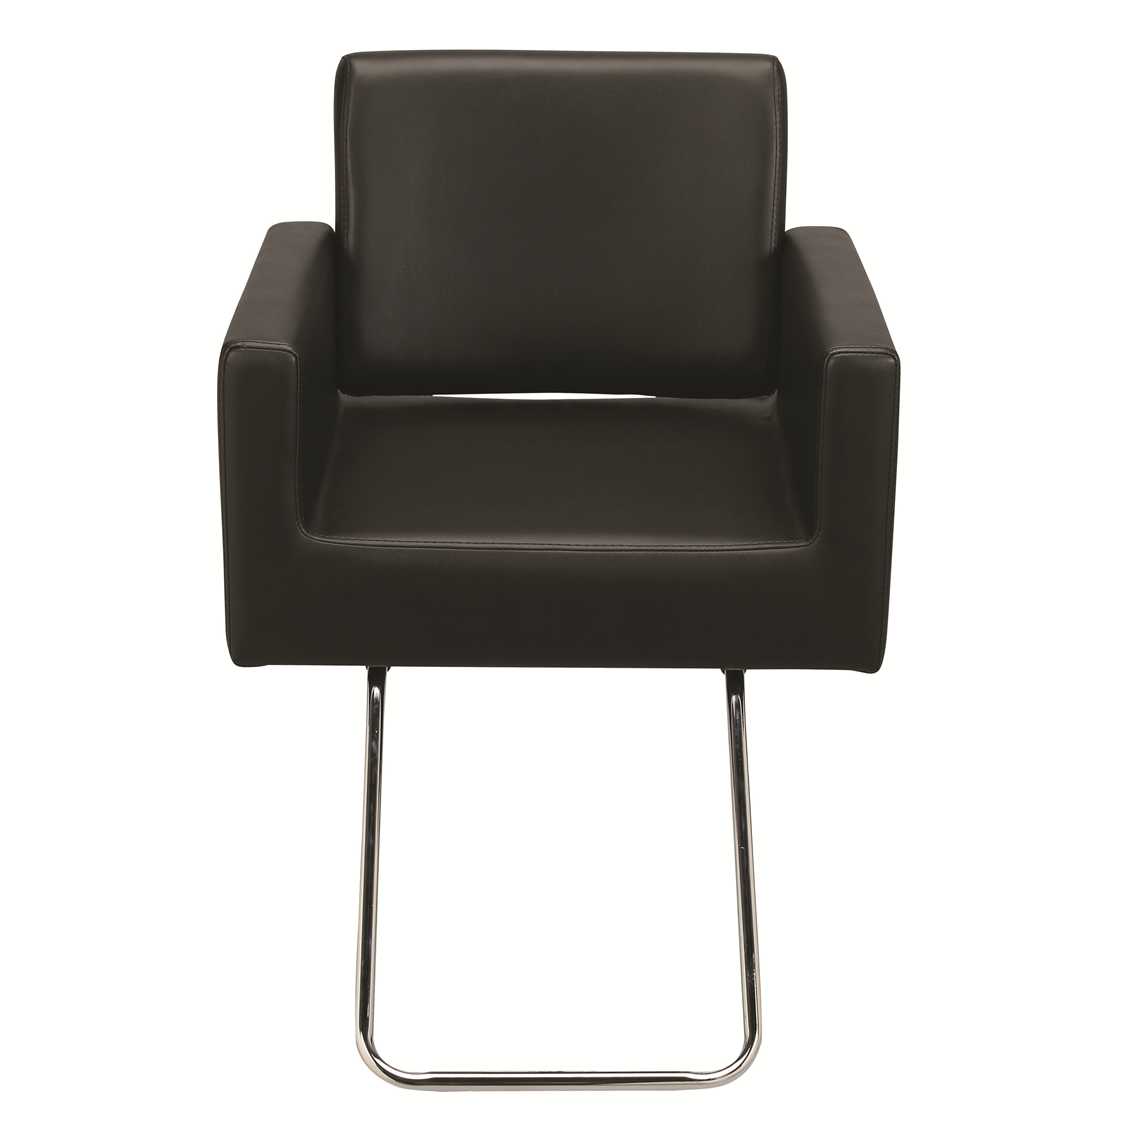 Piazza Styling Chair, Custom Color, TOP Only